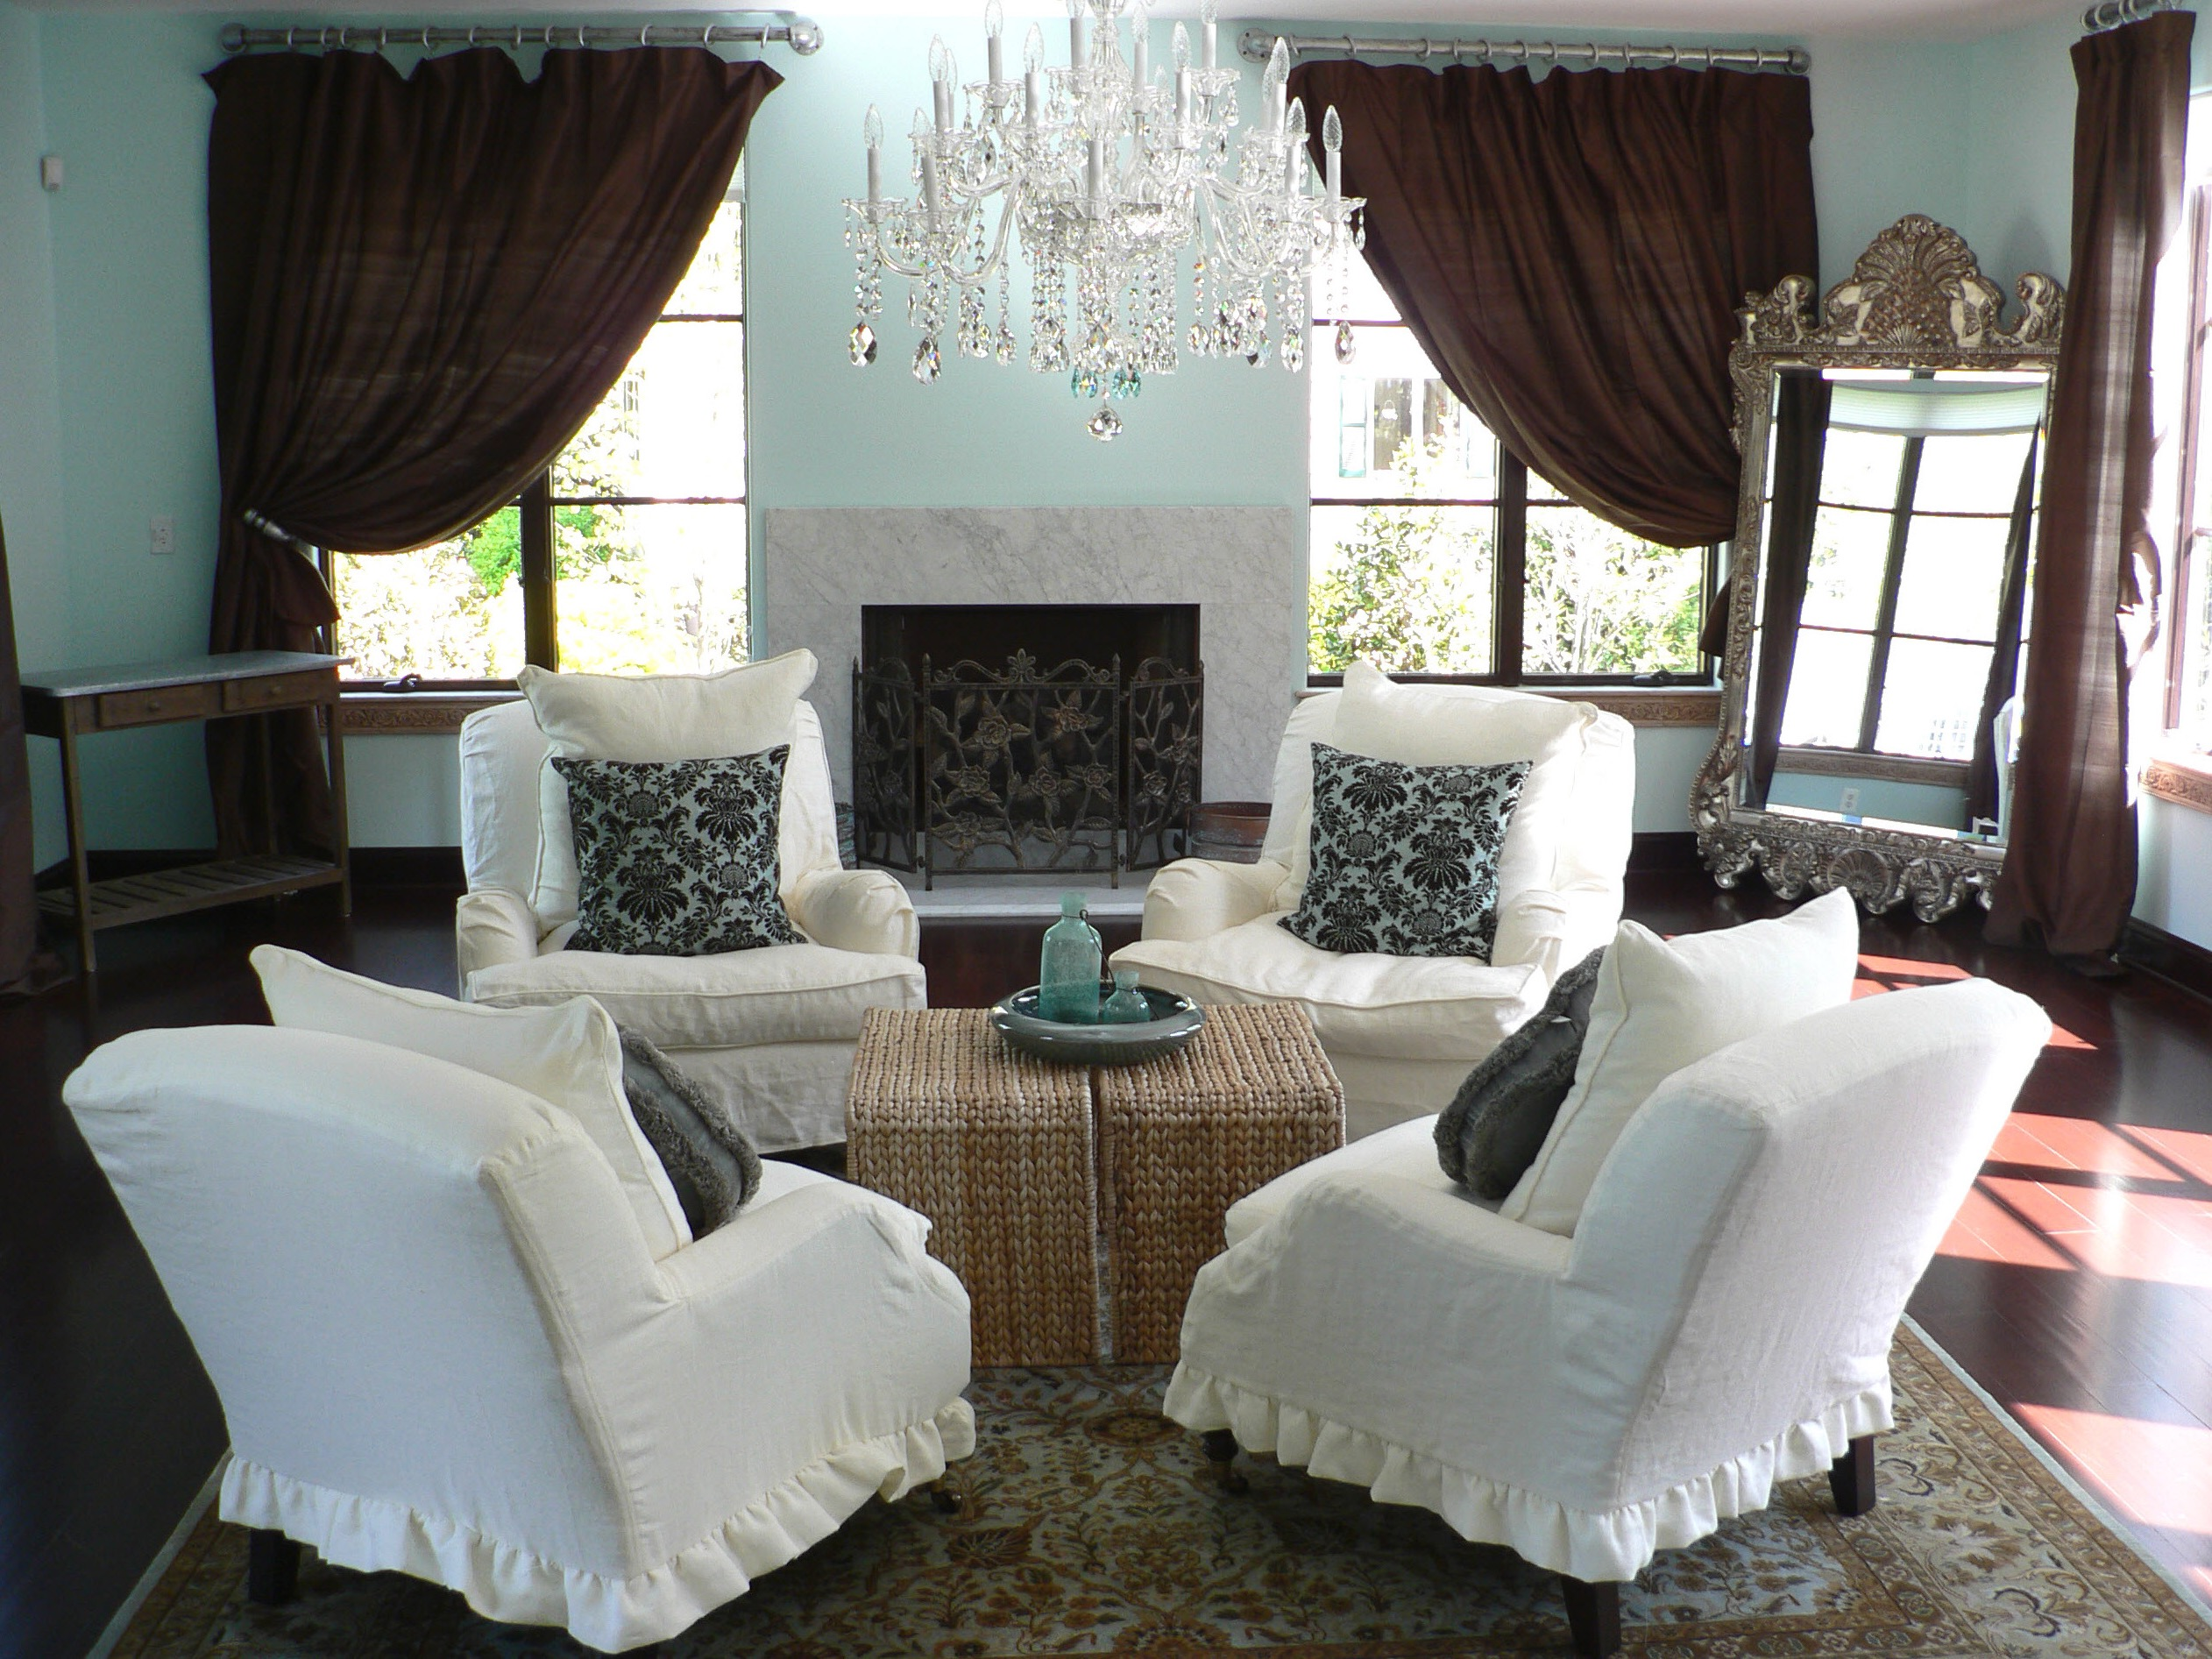 French Country Living Room With Rattan Table (Image 12 of 18)